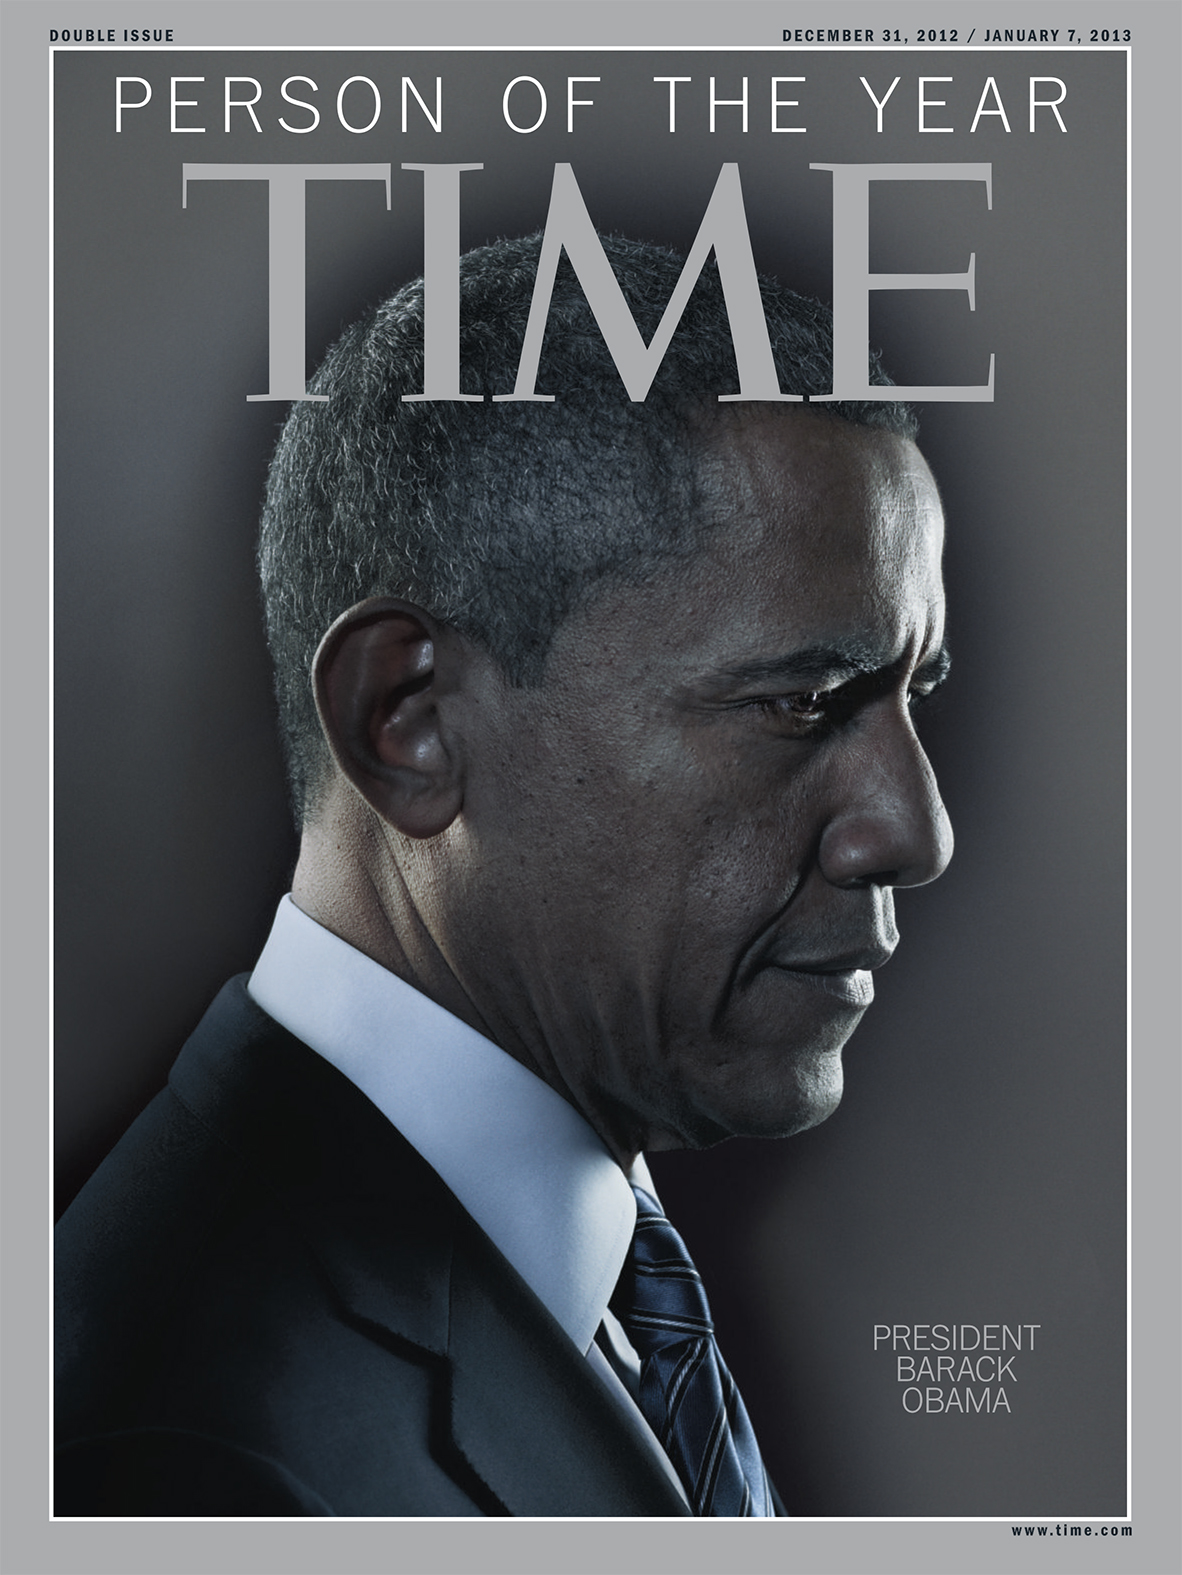 The Dec. 31, 2012 issue of TIME magazine.